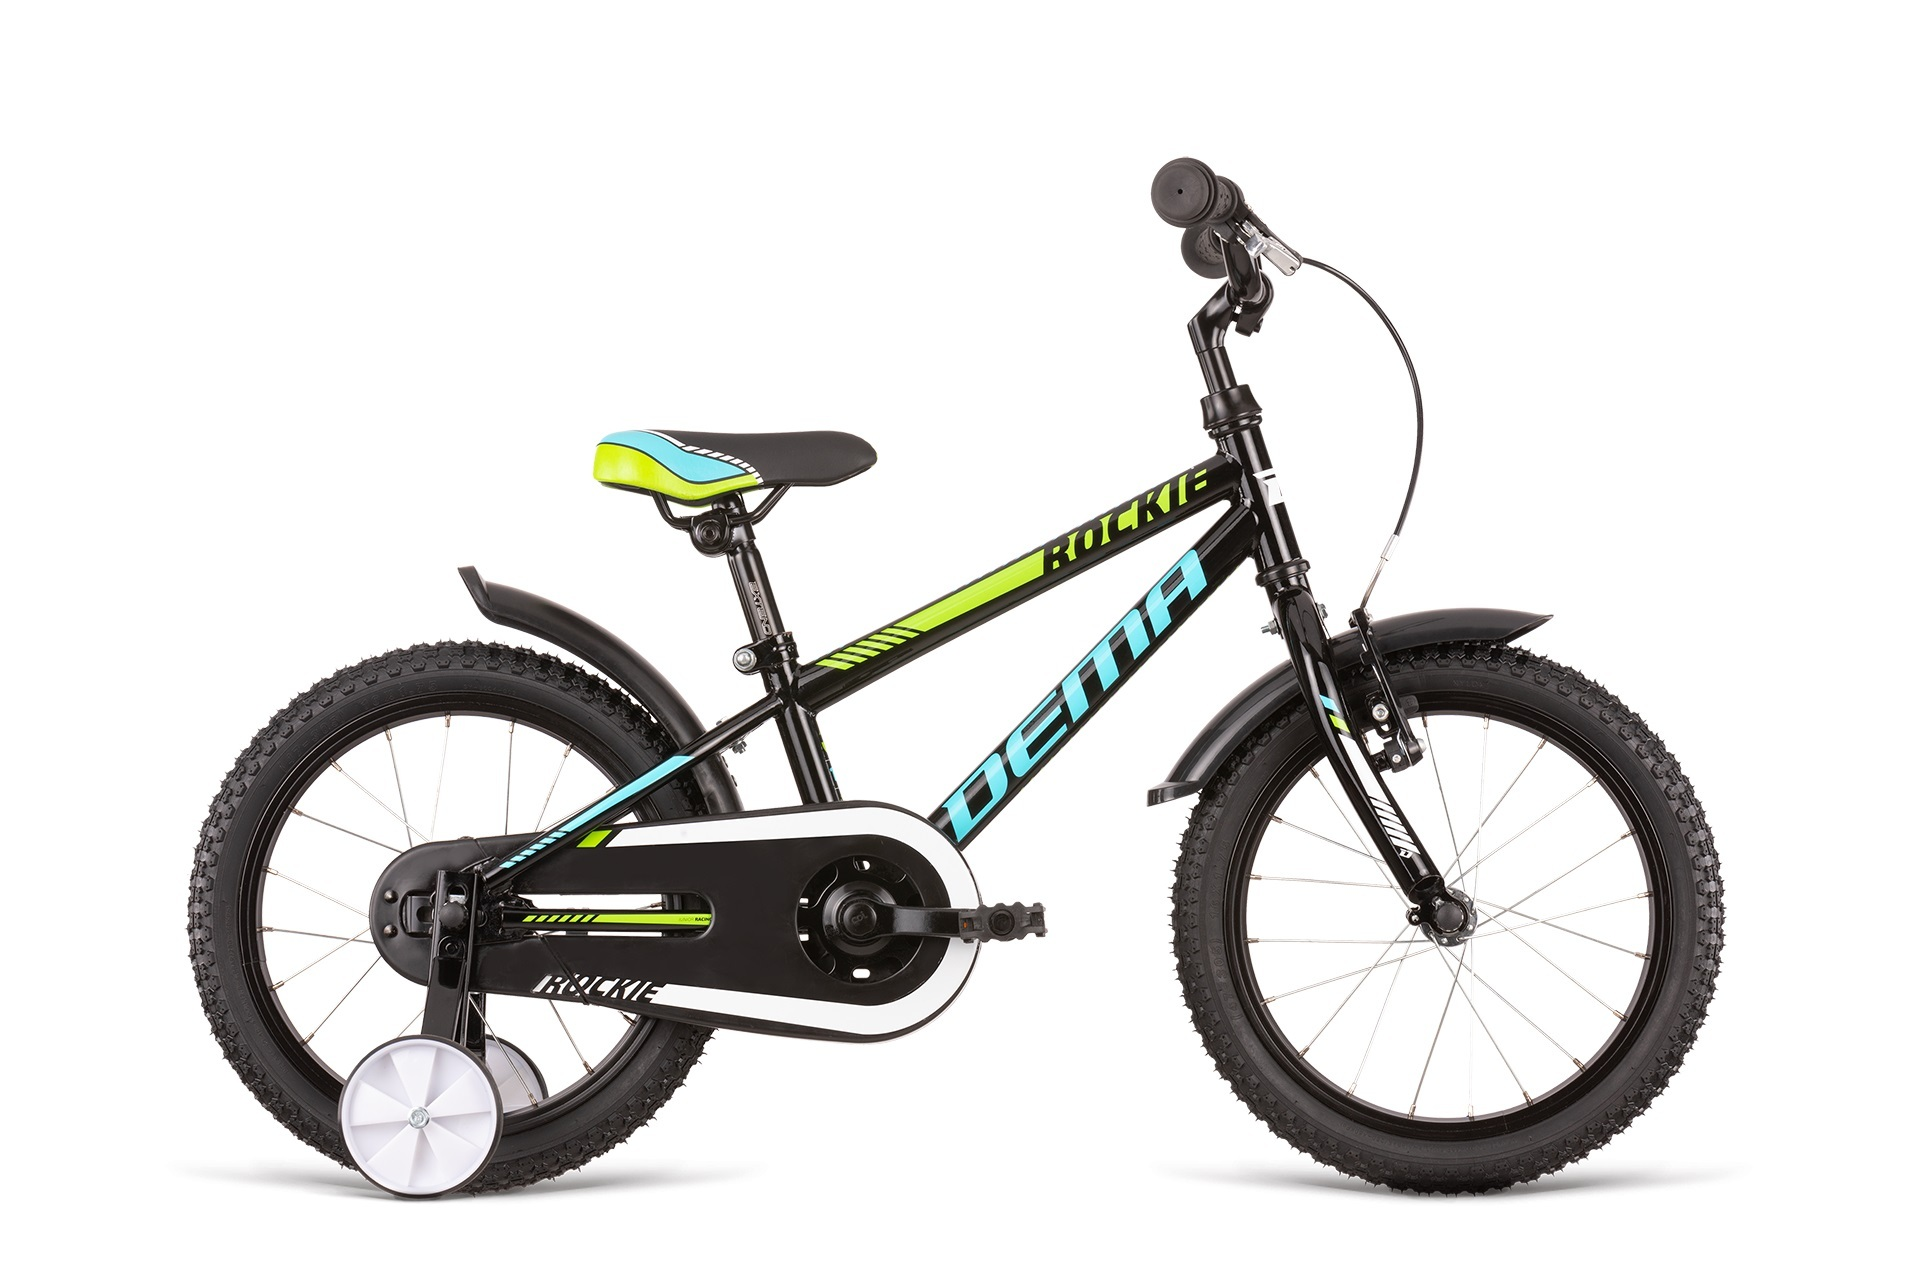 Bicykel Dema ROCKIE 16 neon yellow-black